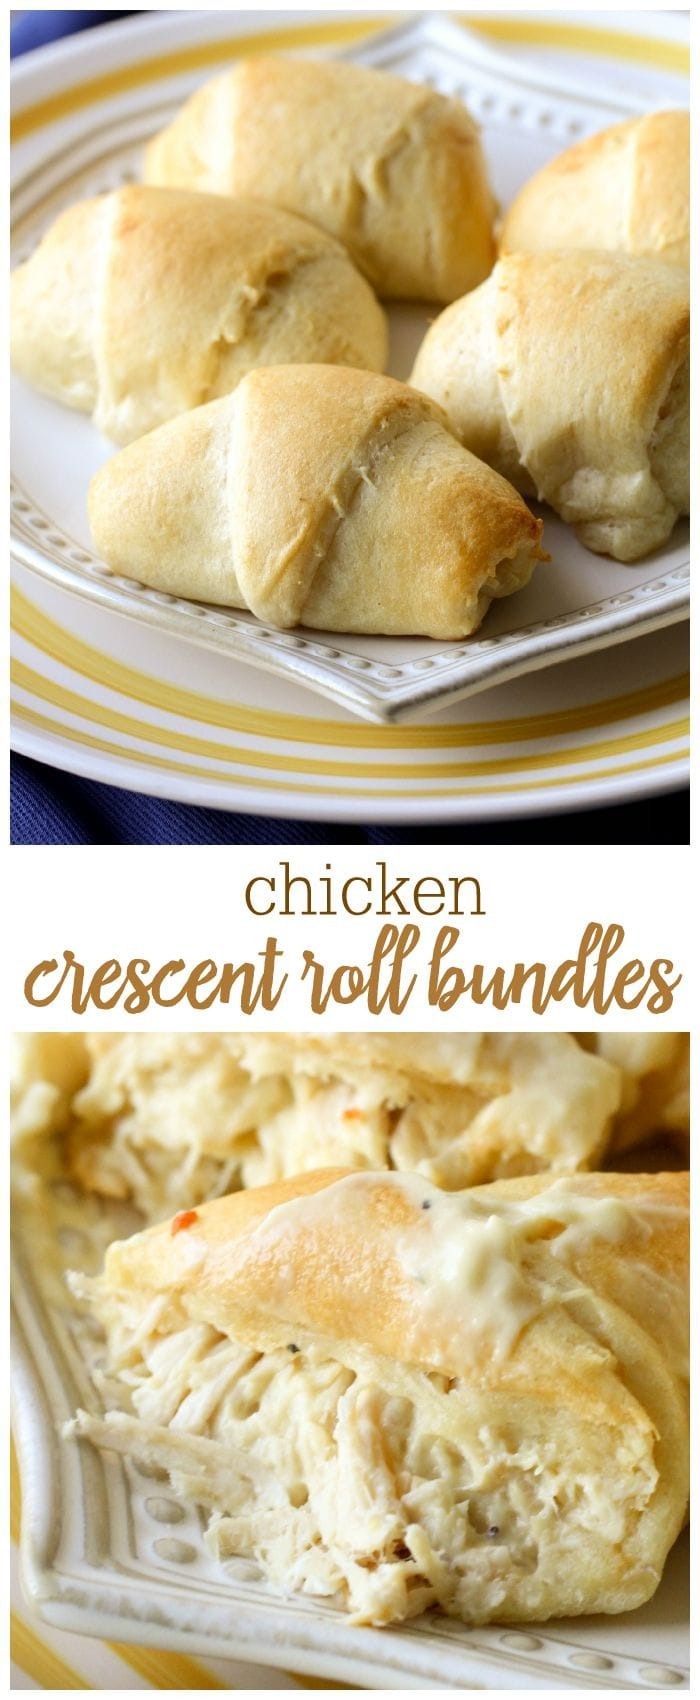 Recipes Using Crescent Roll Dough